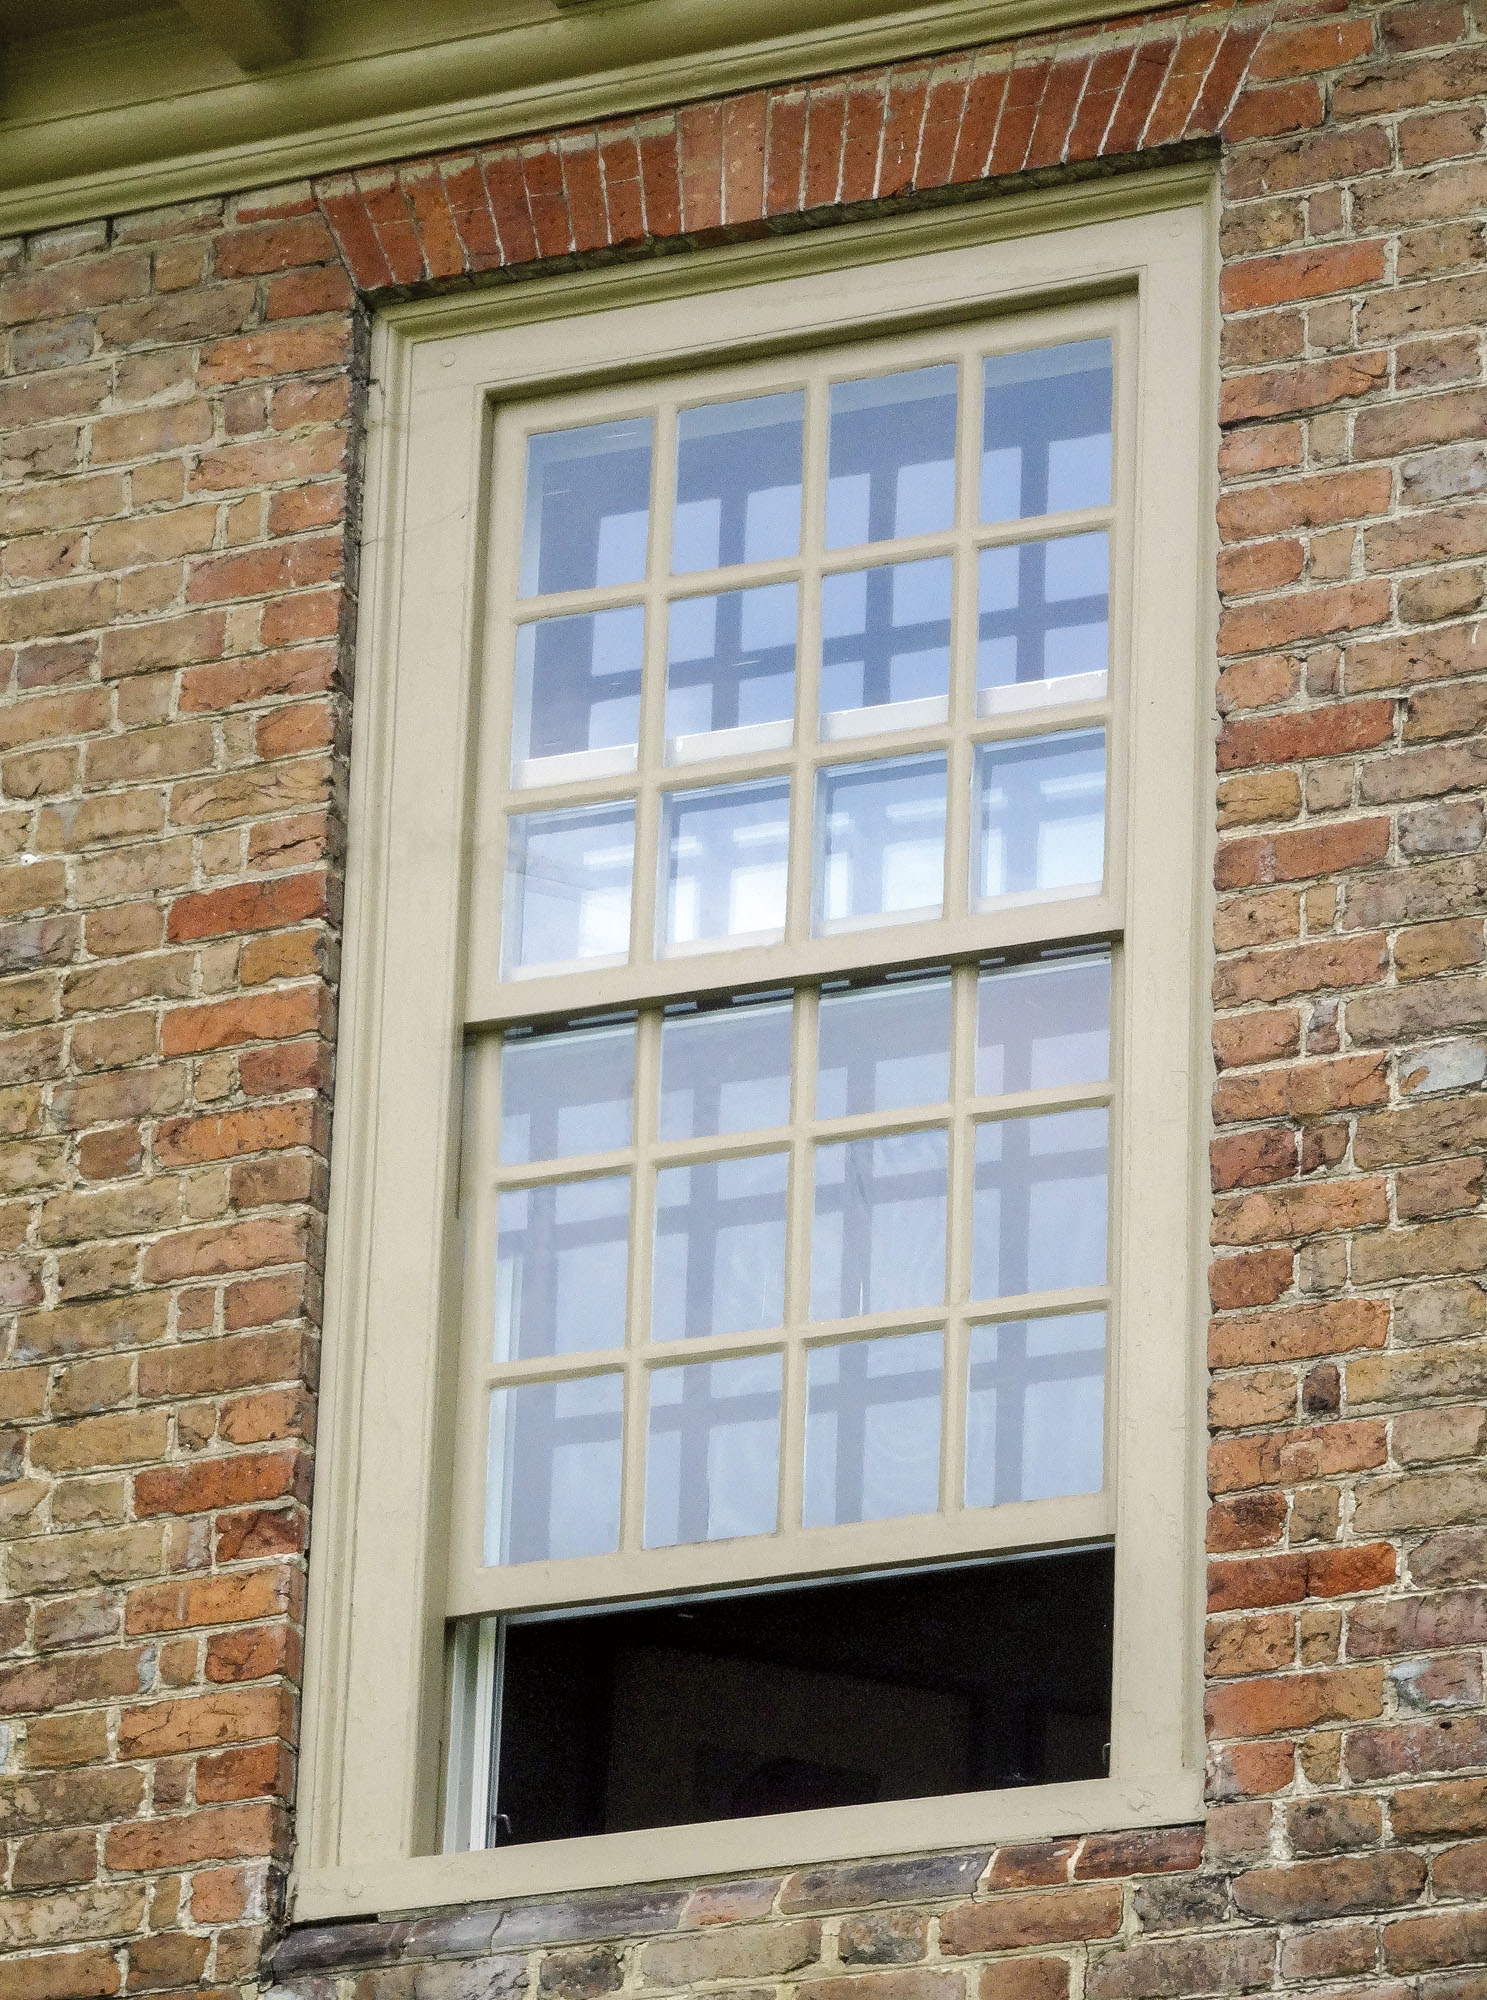 Soundproofing Windows - Old House Journal Magazine